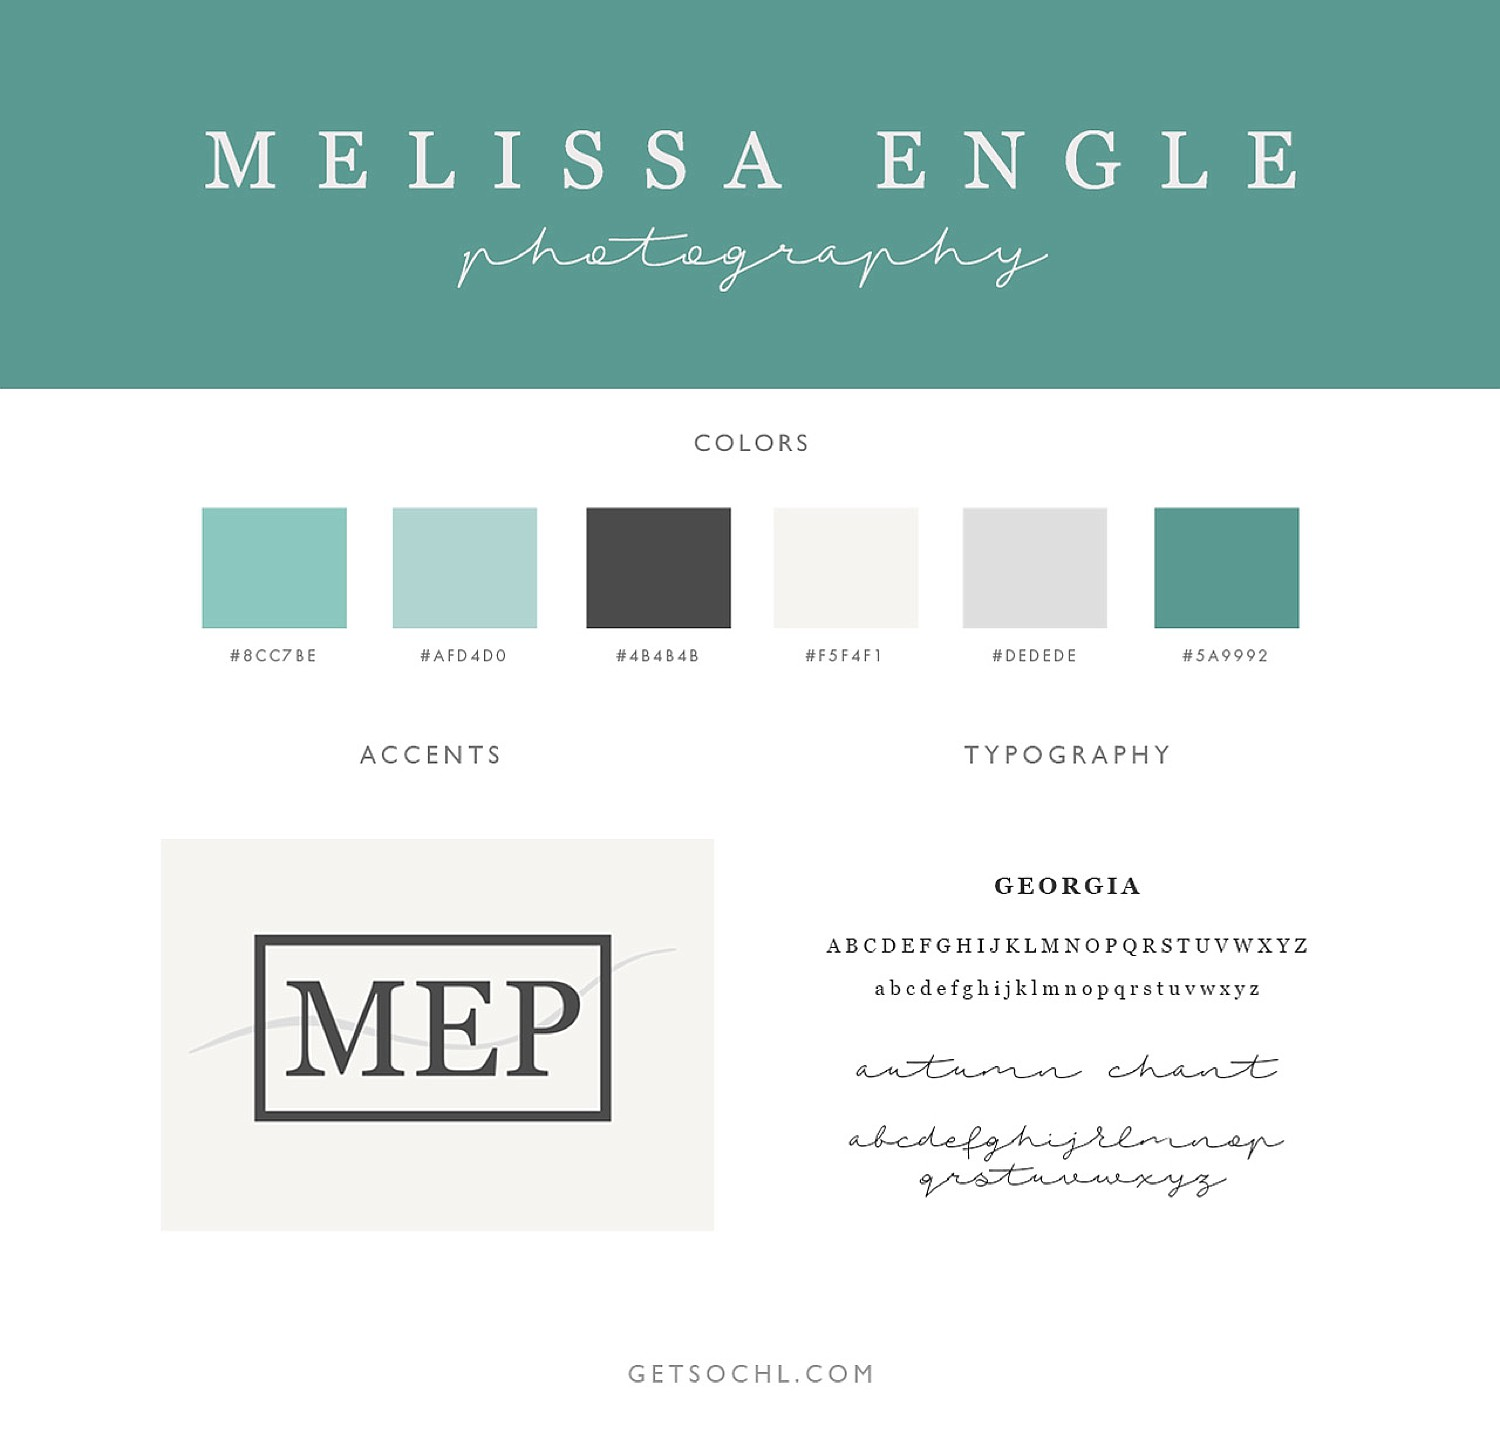 melissa_engle_photography_style_guide